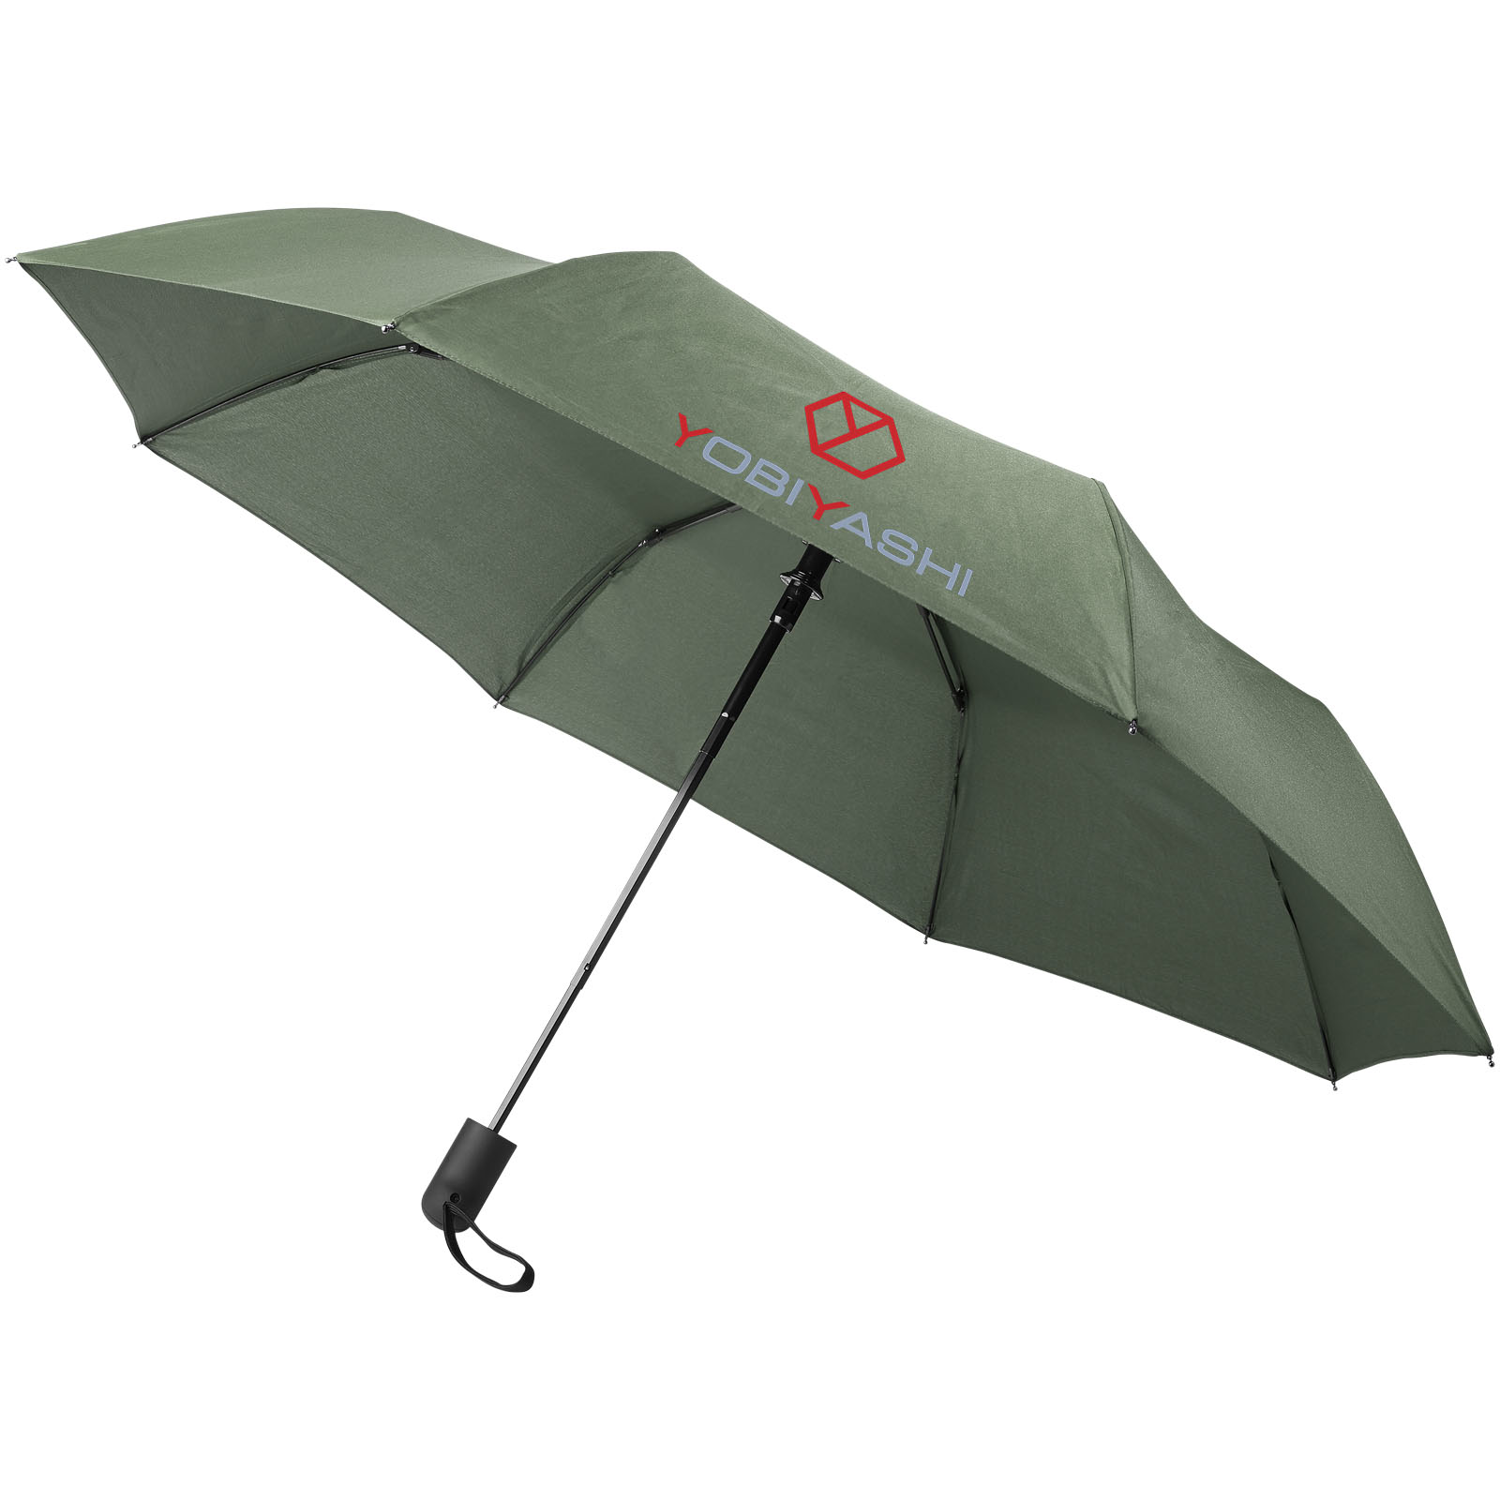 Gisele 21Inch Heathered Auto Open Umbrella